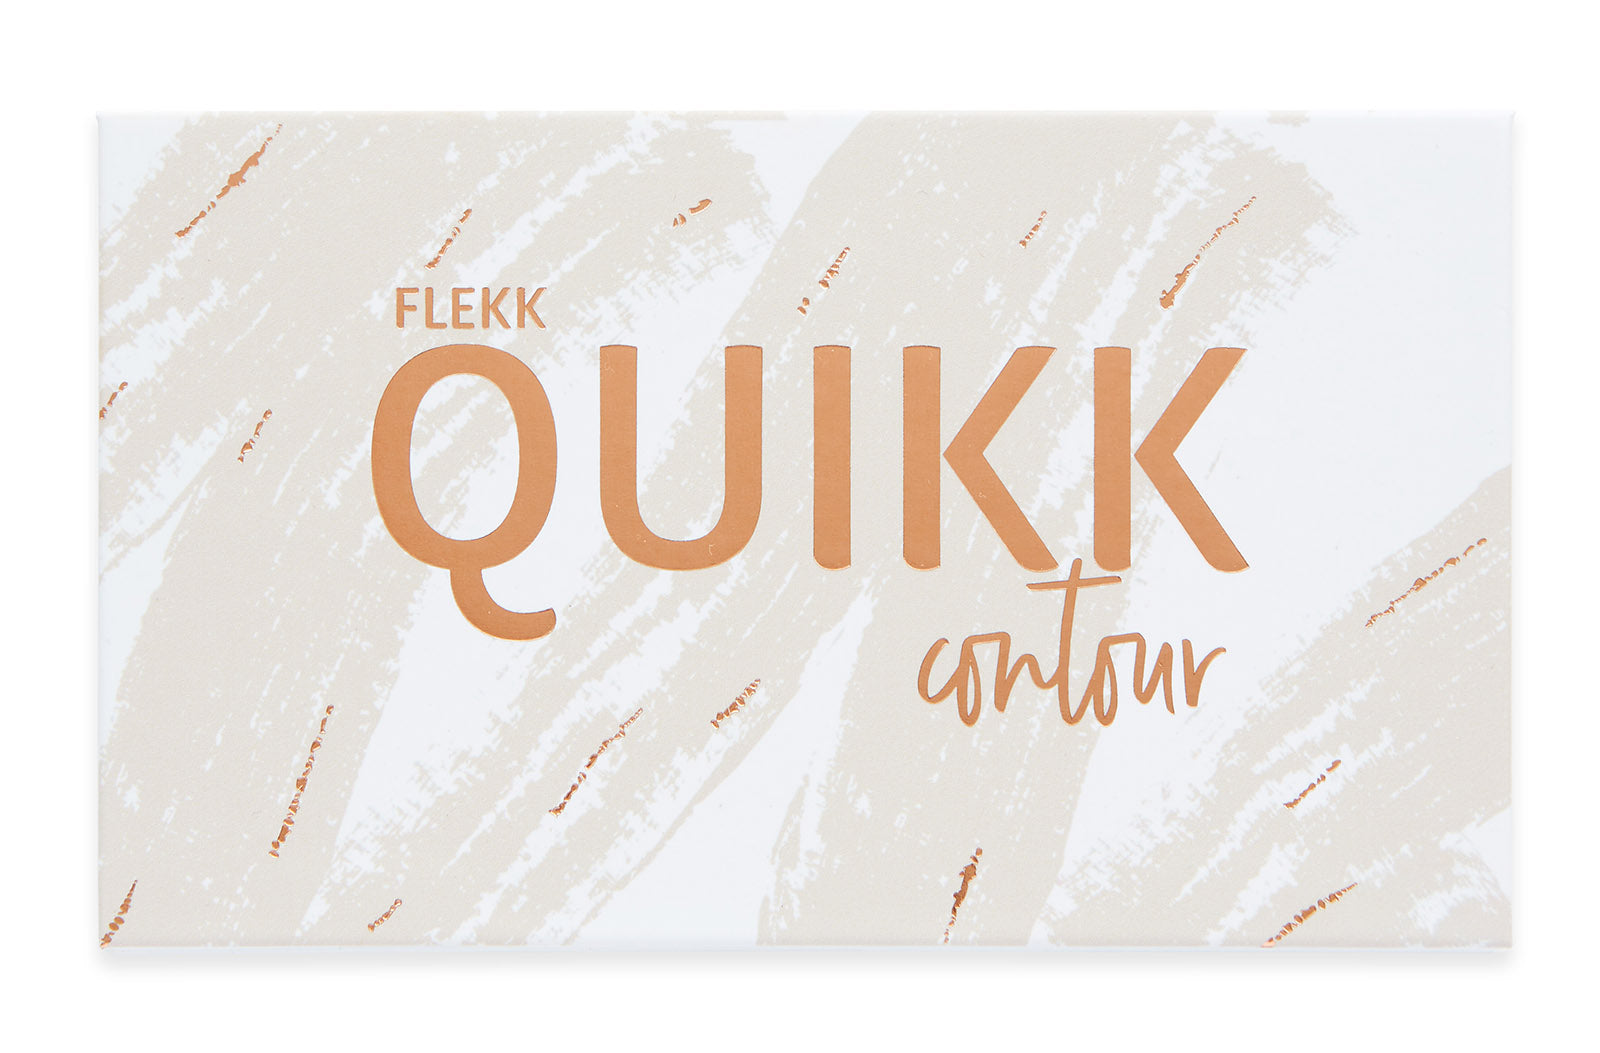 QUINCY QUIKK Contour Palette + Brush